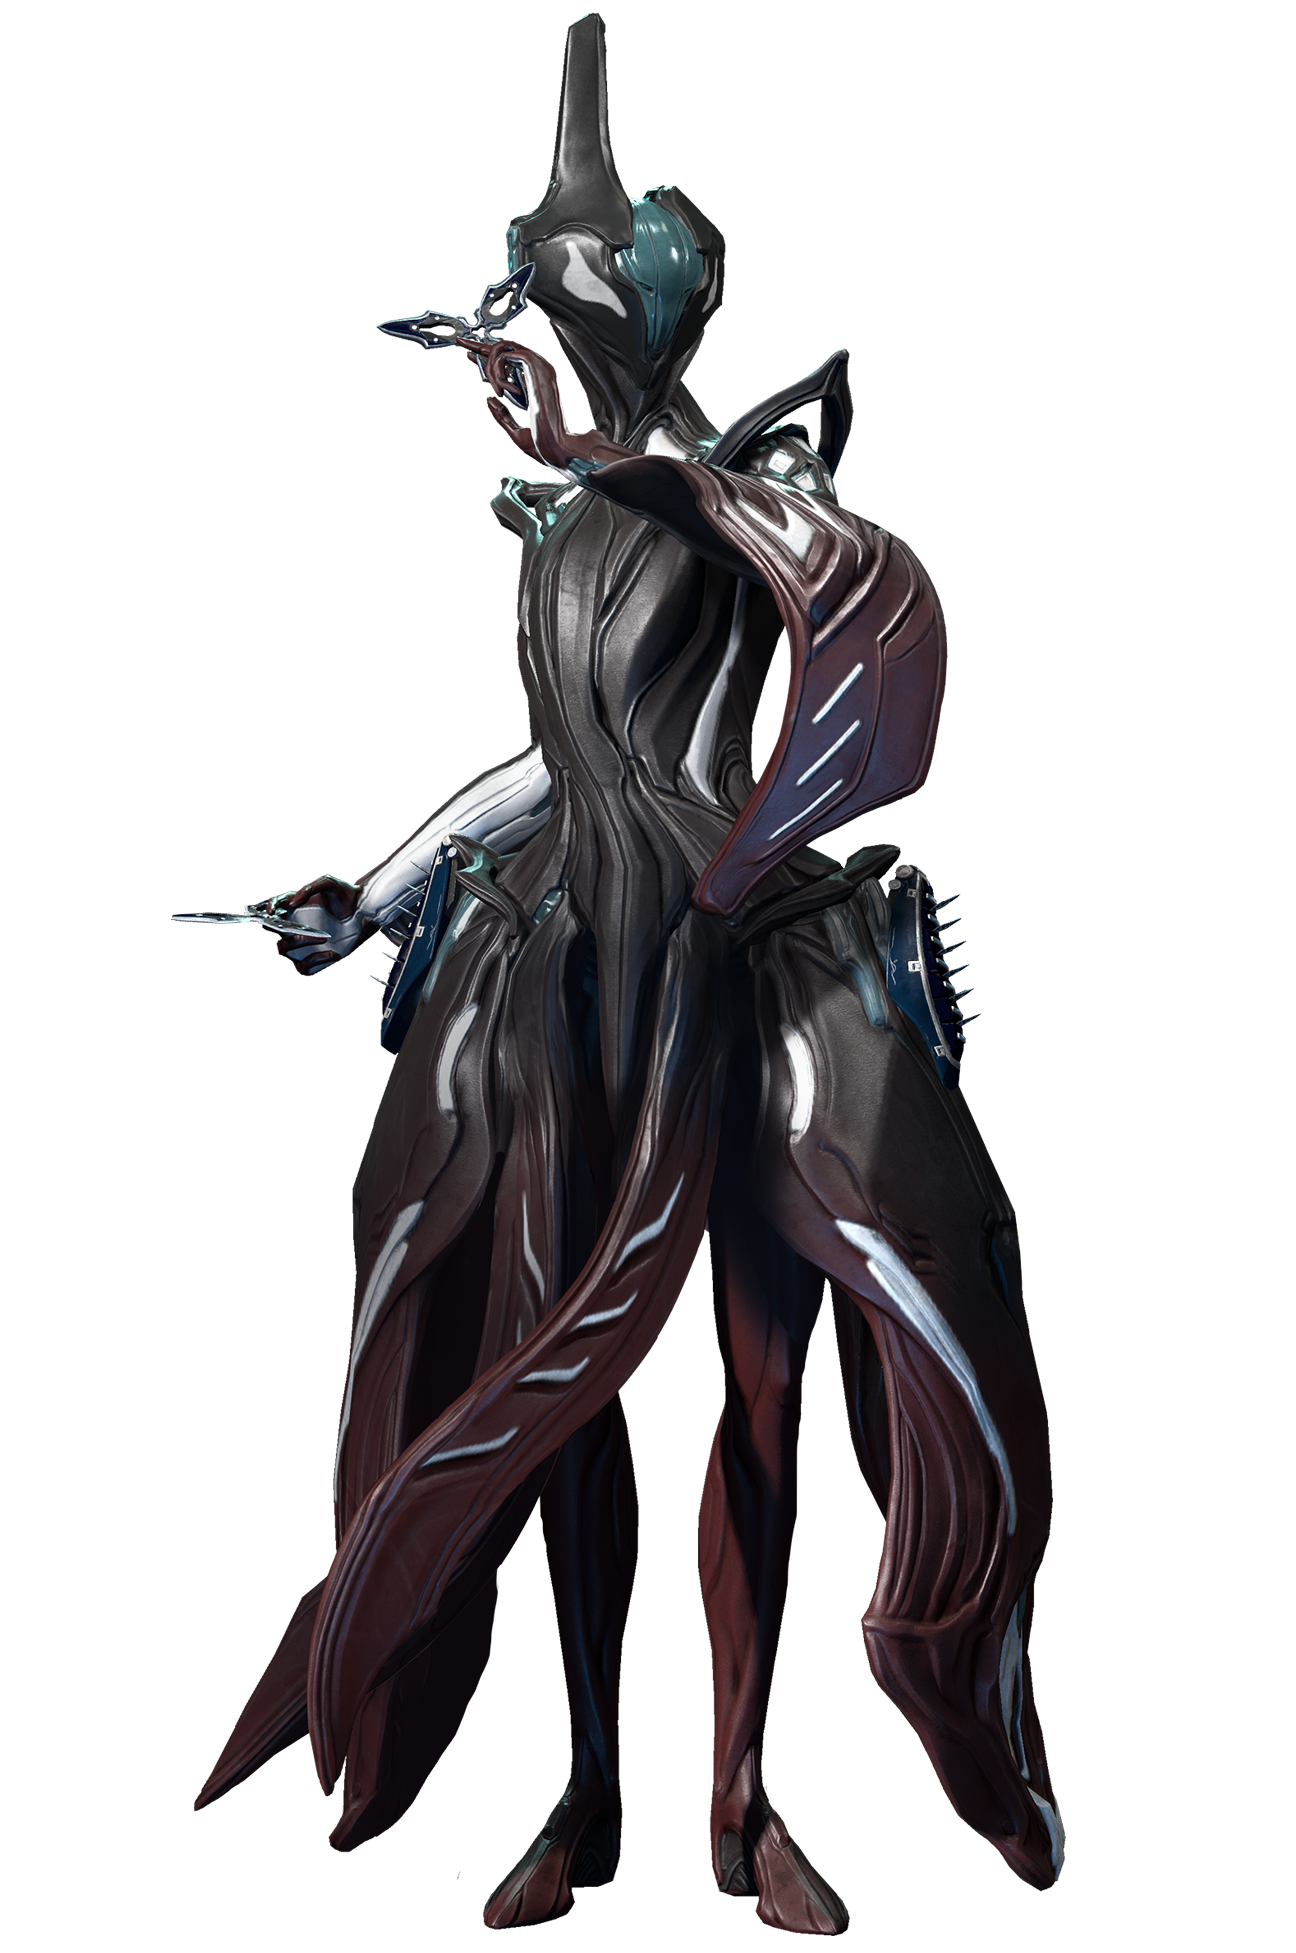 equinox night is the form of darkness and tranquility the warframe